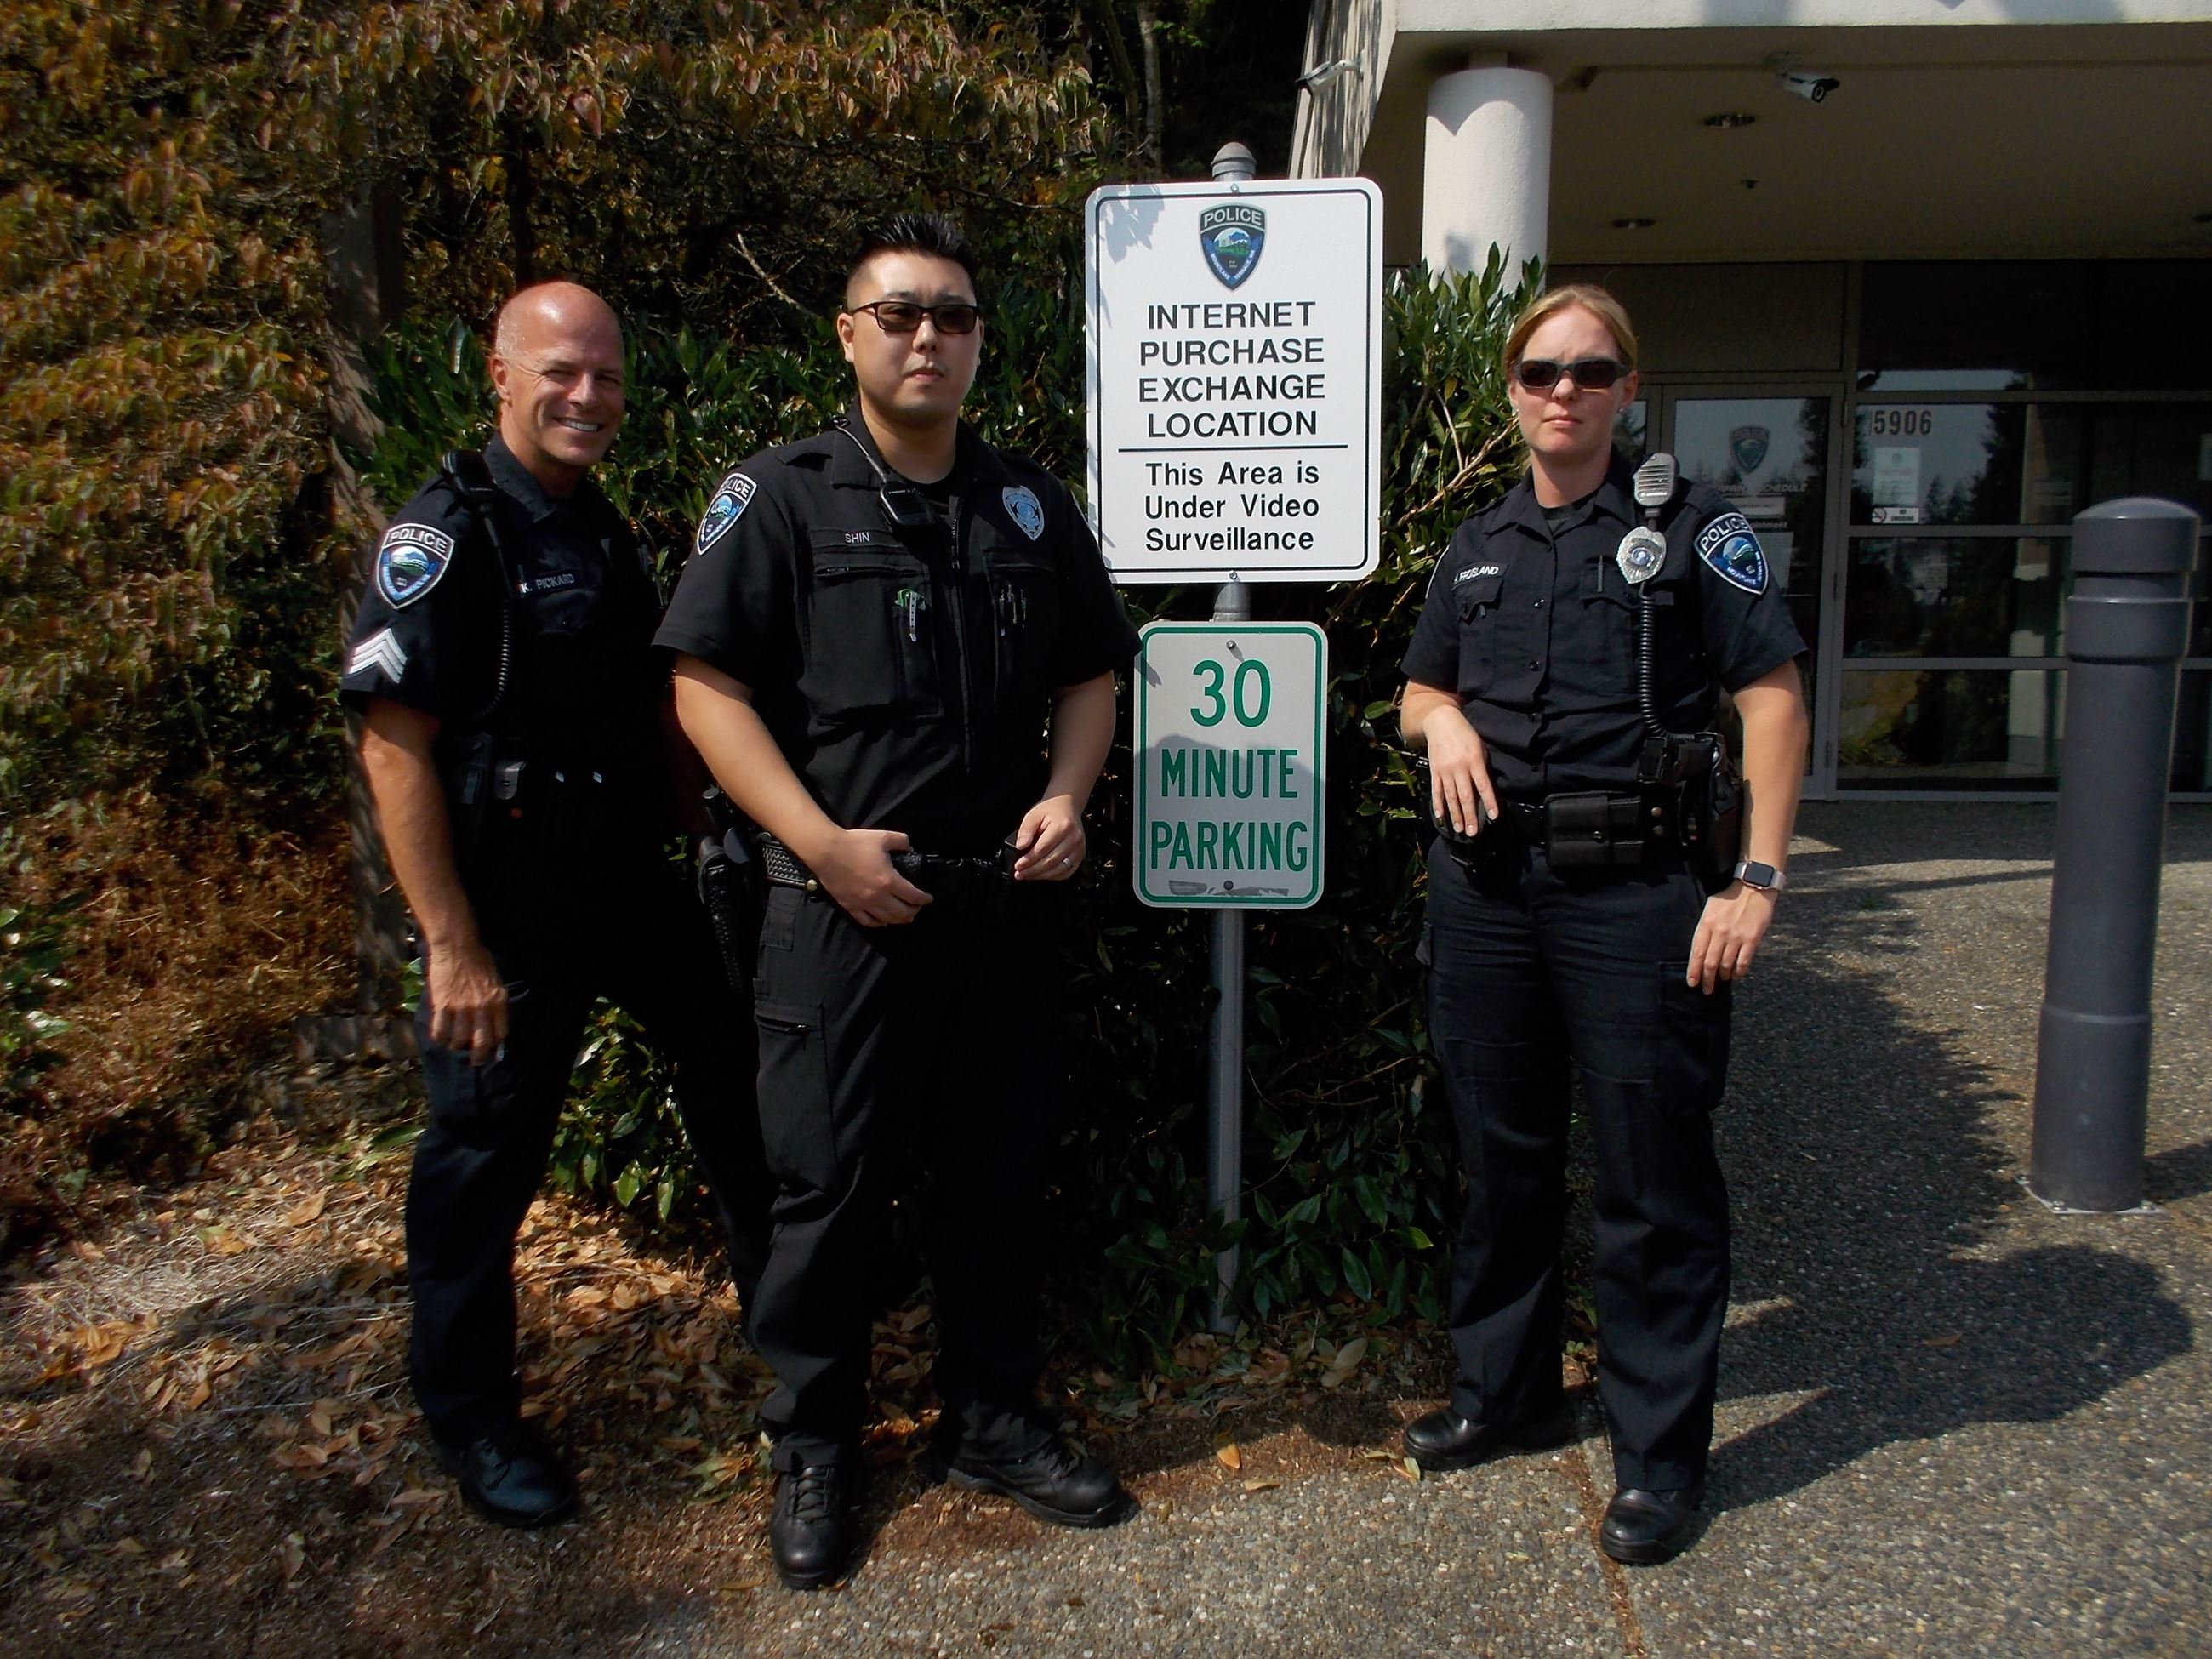 Three officers standing at Safe Internet Transaction Location sign